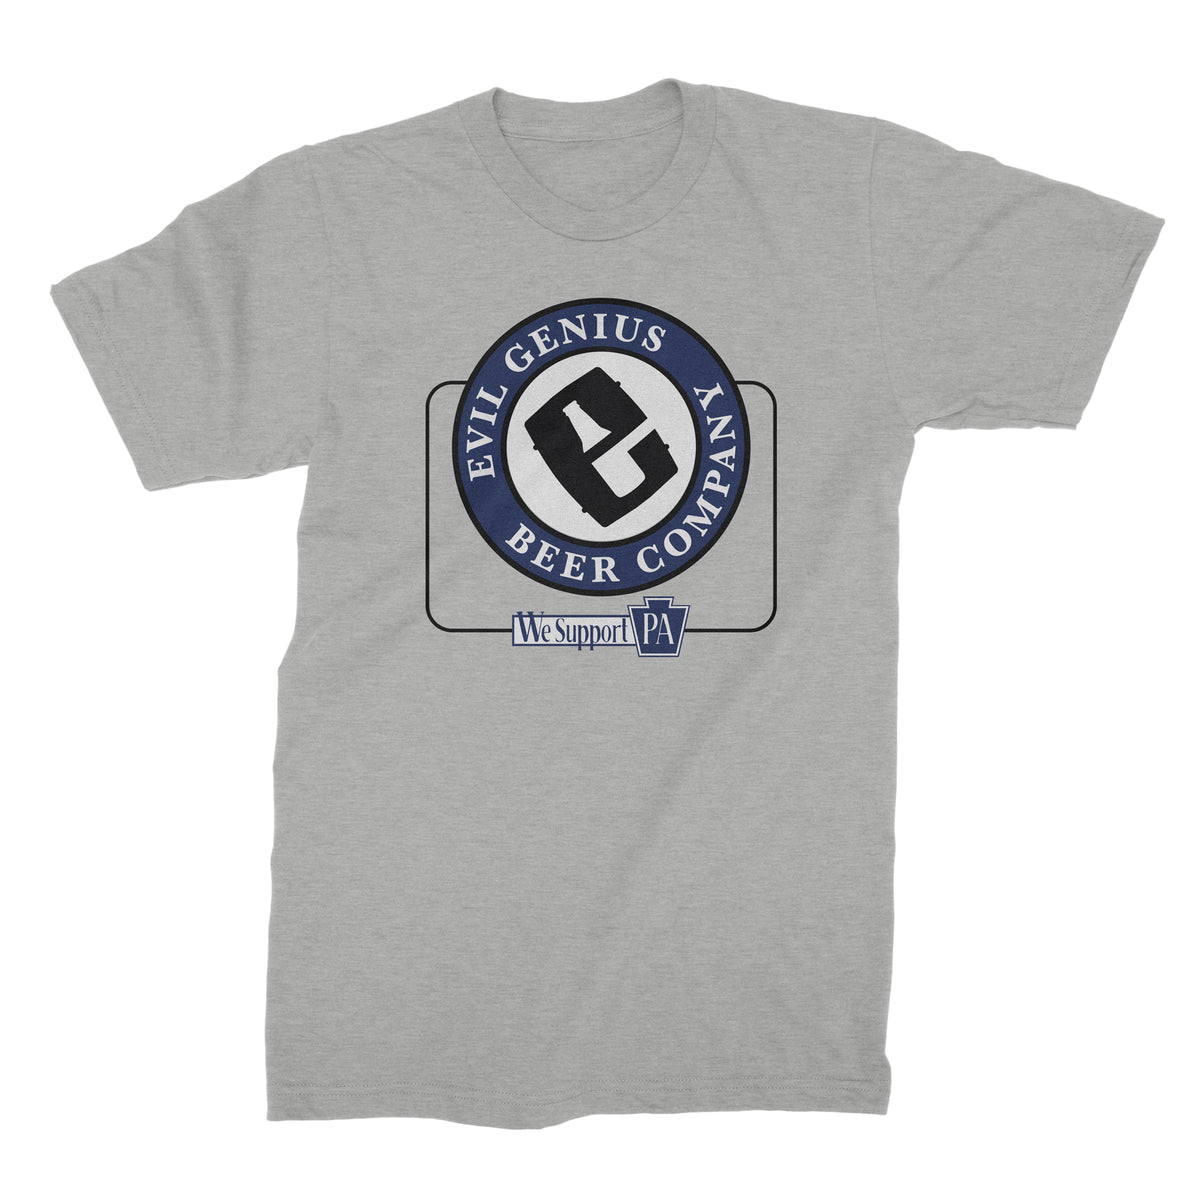 Evil Genius Beer Company We Support PA T-Shirt